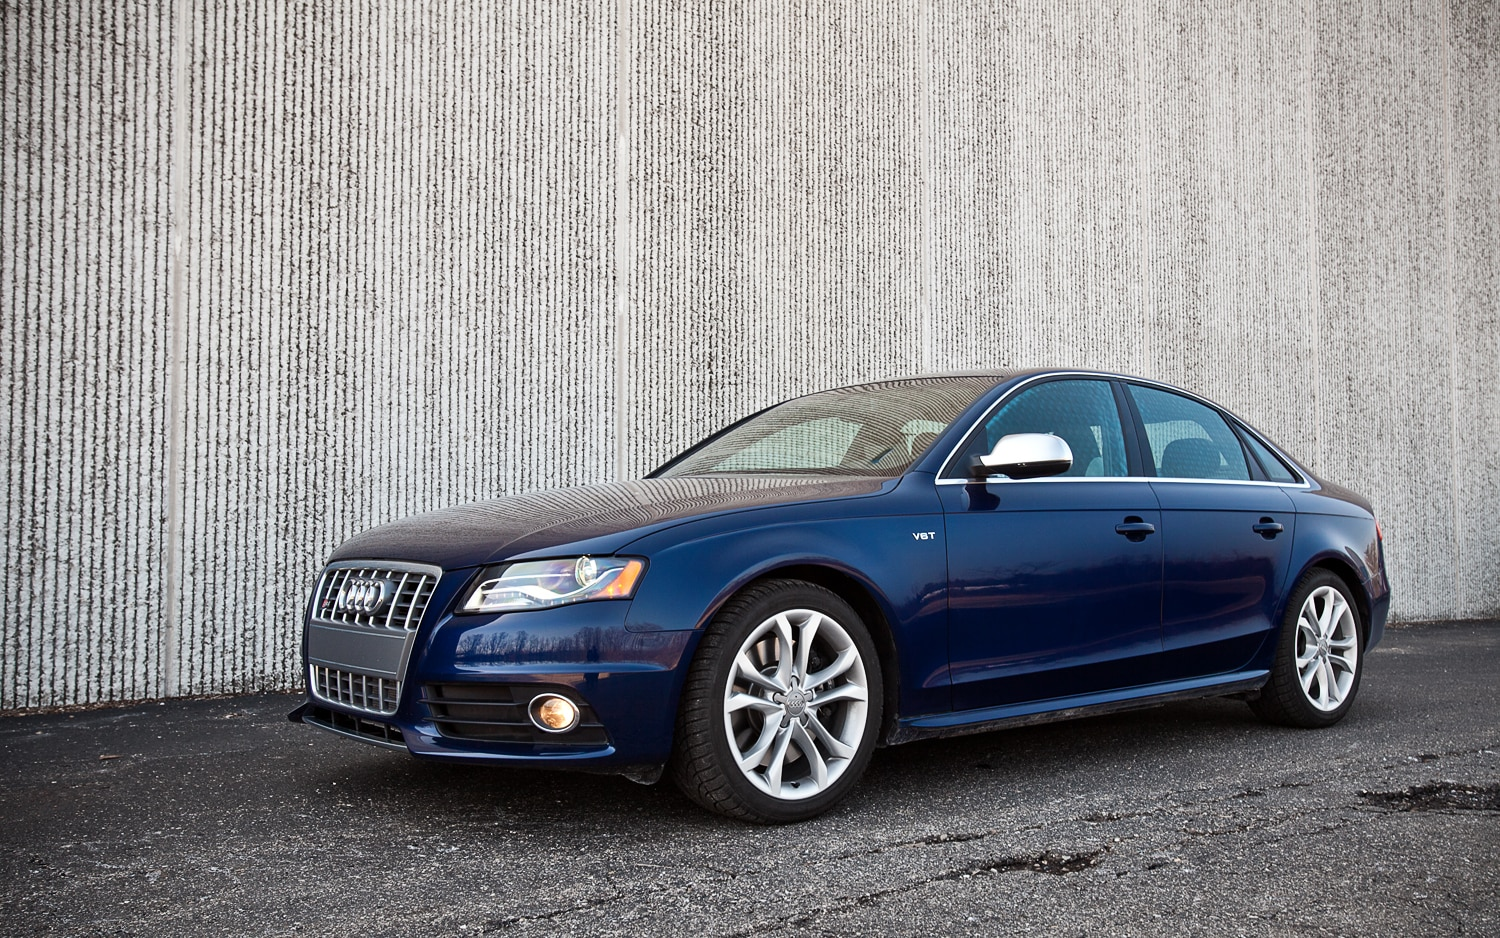 Used 2012 Audi S4 for sale - Pricing